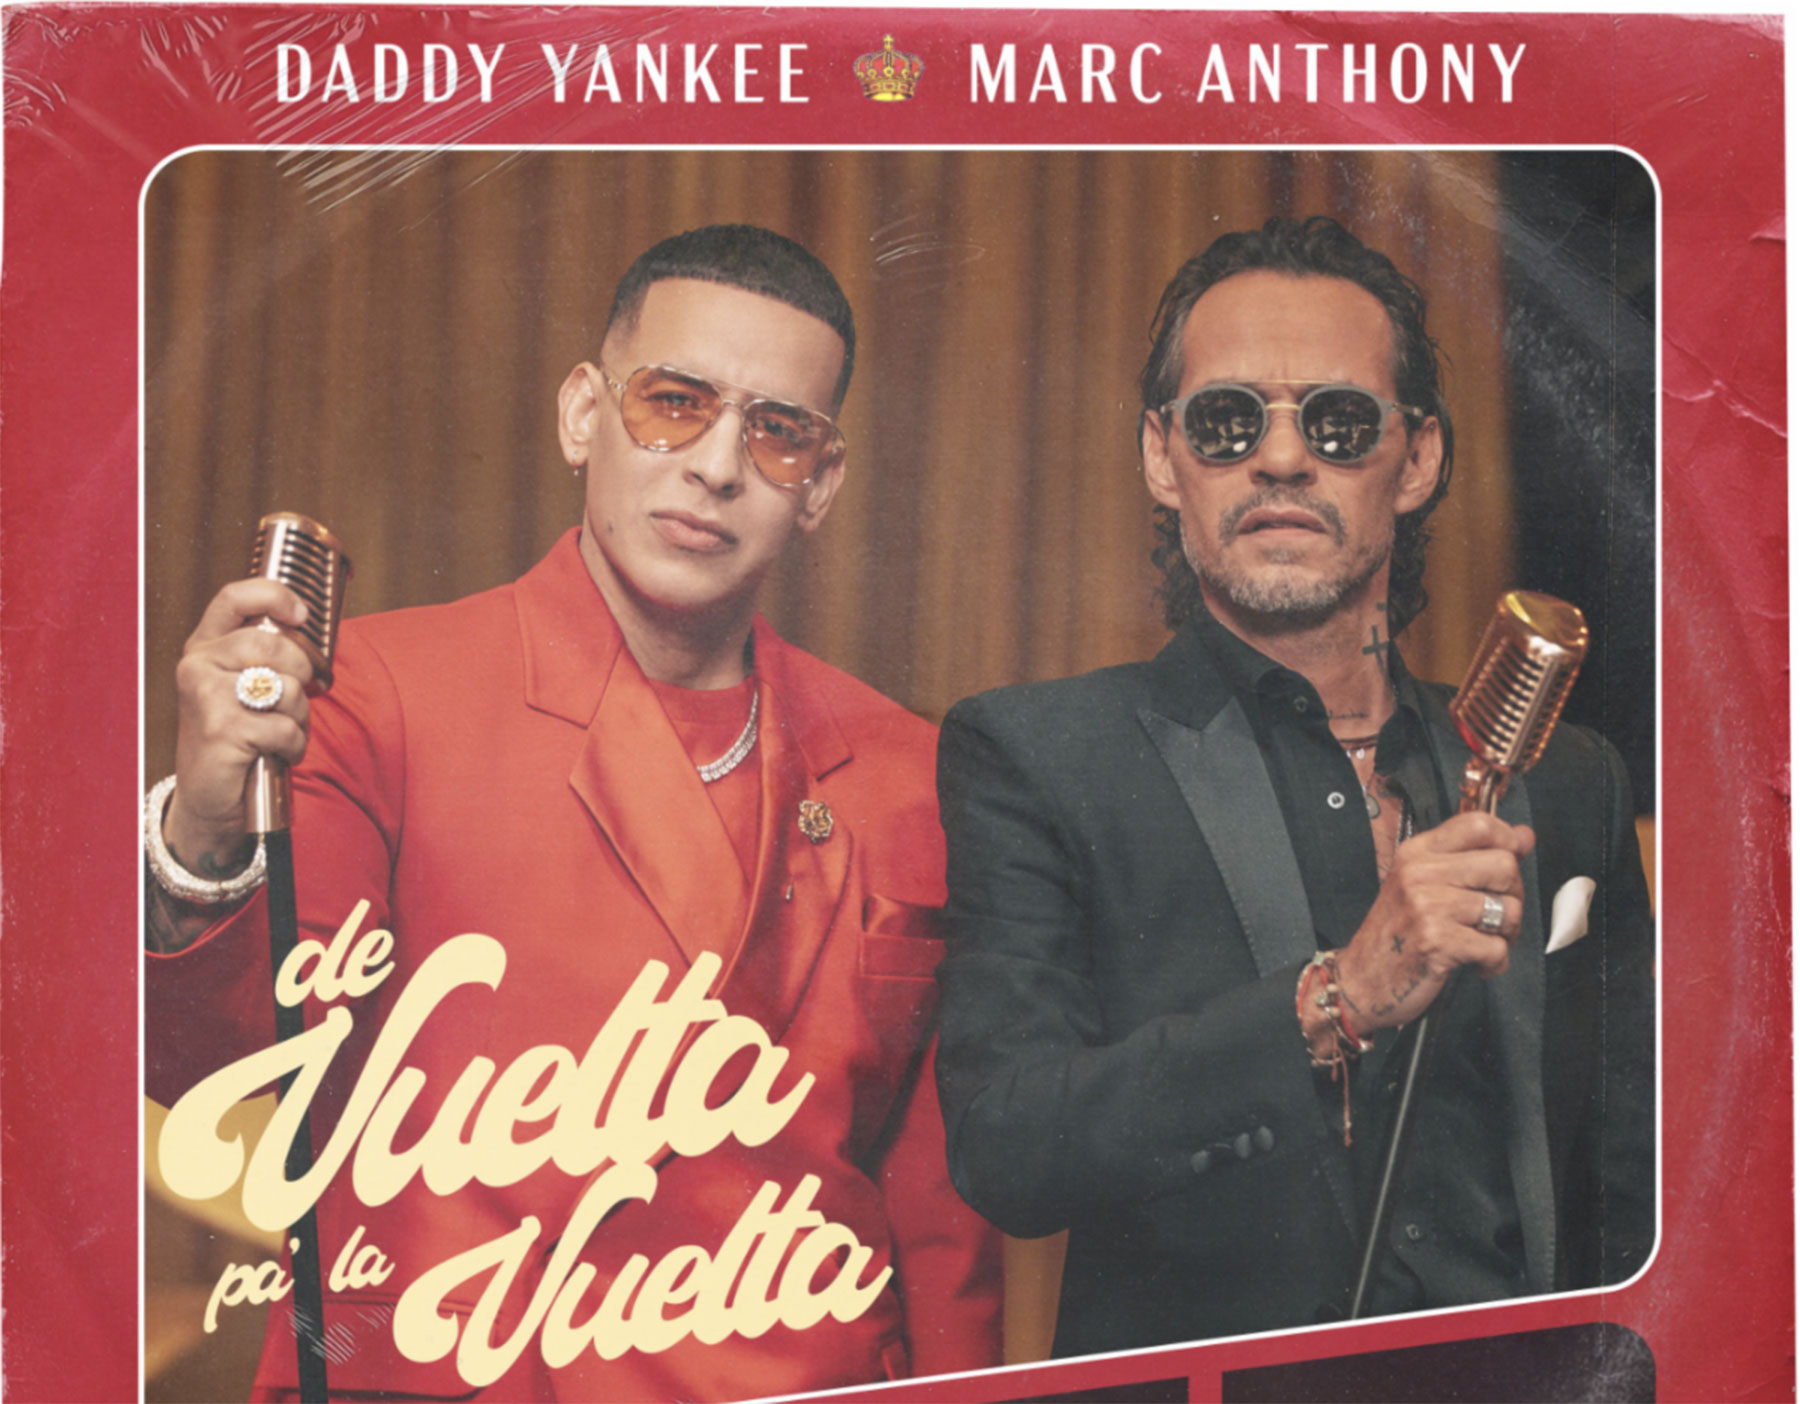 DADDY YANKEE Y MARC ANTHONY cancion De Vuelta pa' la Vuelta